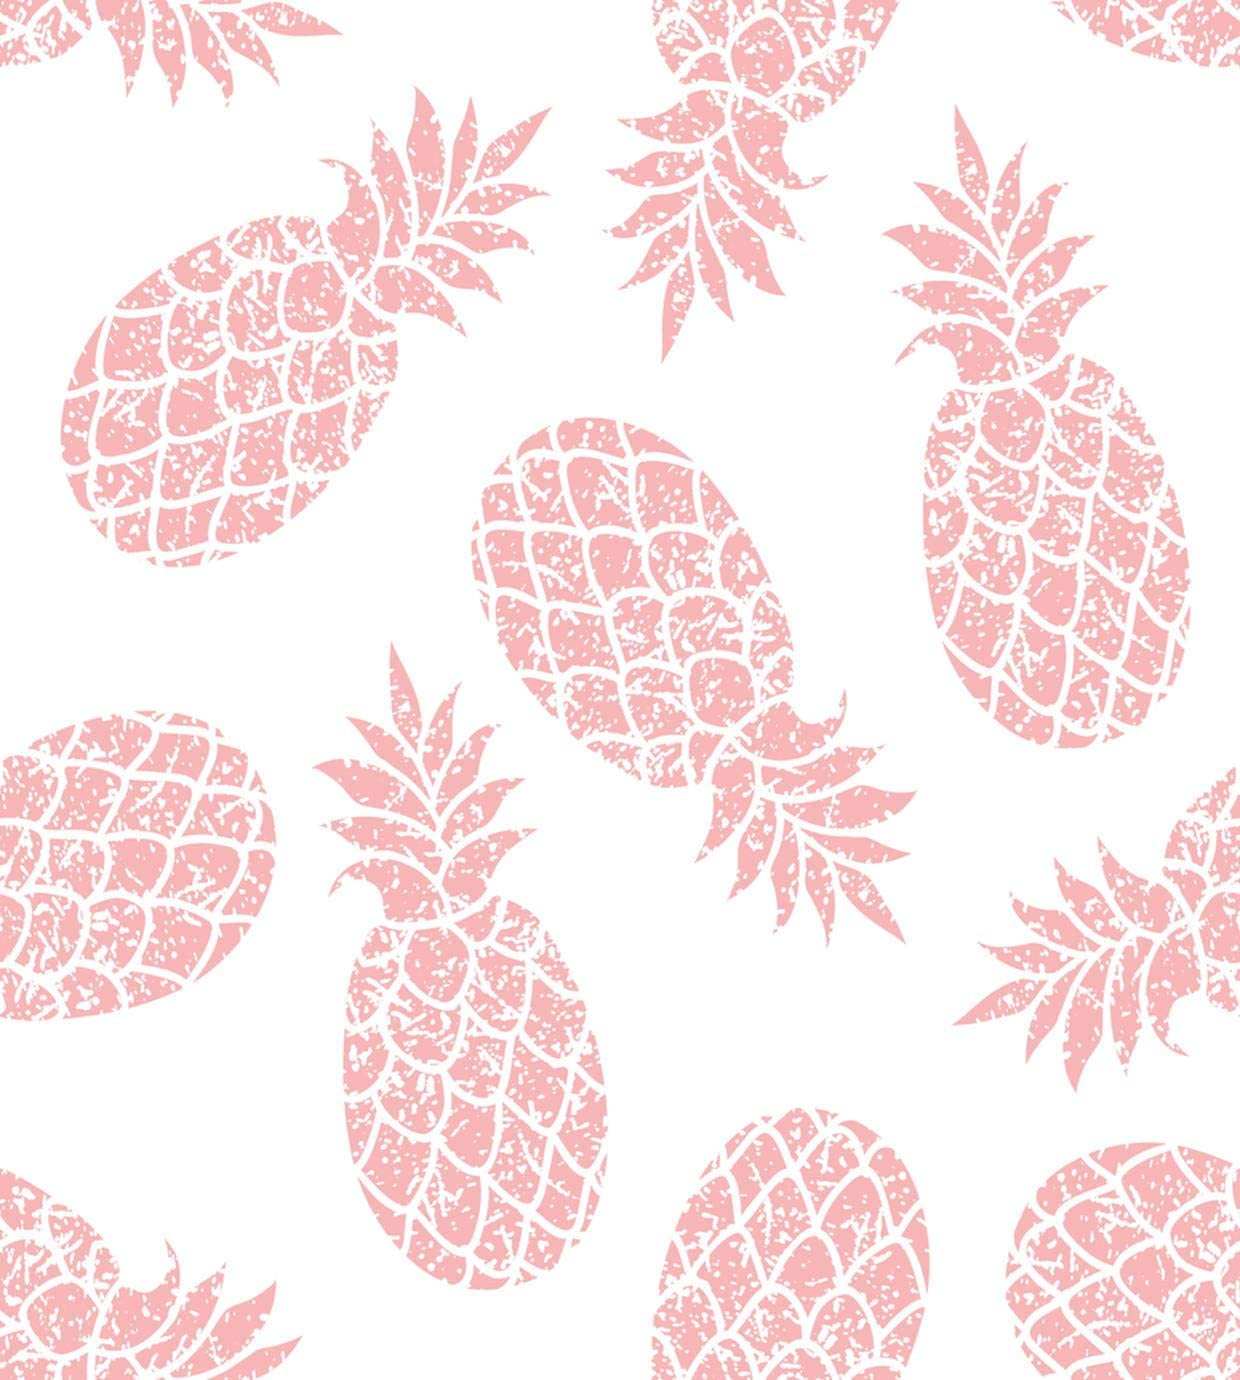 Qewhyn Poster Pineapple Home Sweet Hawaiian Tropical Ananas Exotic Food Fresh Fruit Fun Wall Art Painting Print Home Artwork Decoration for Living Room Bedroom Office Unframed 24x36 lnches